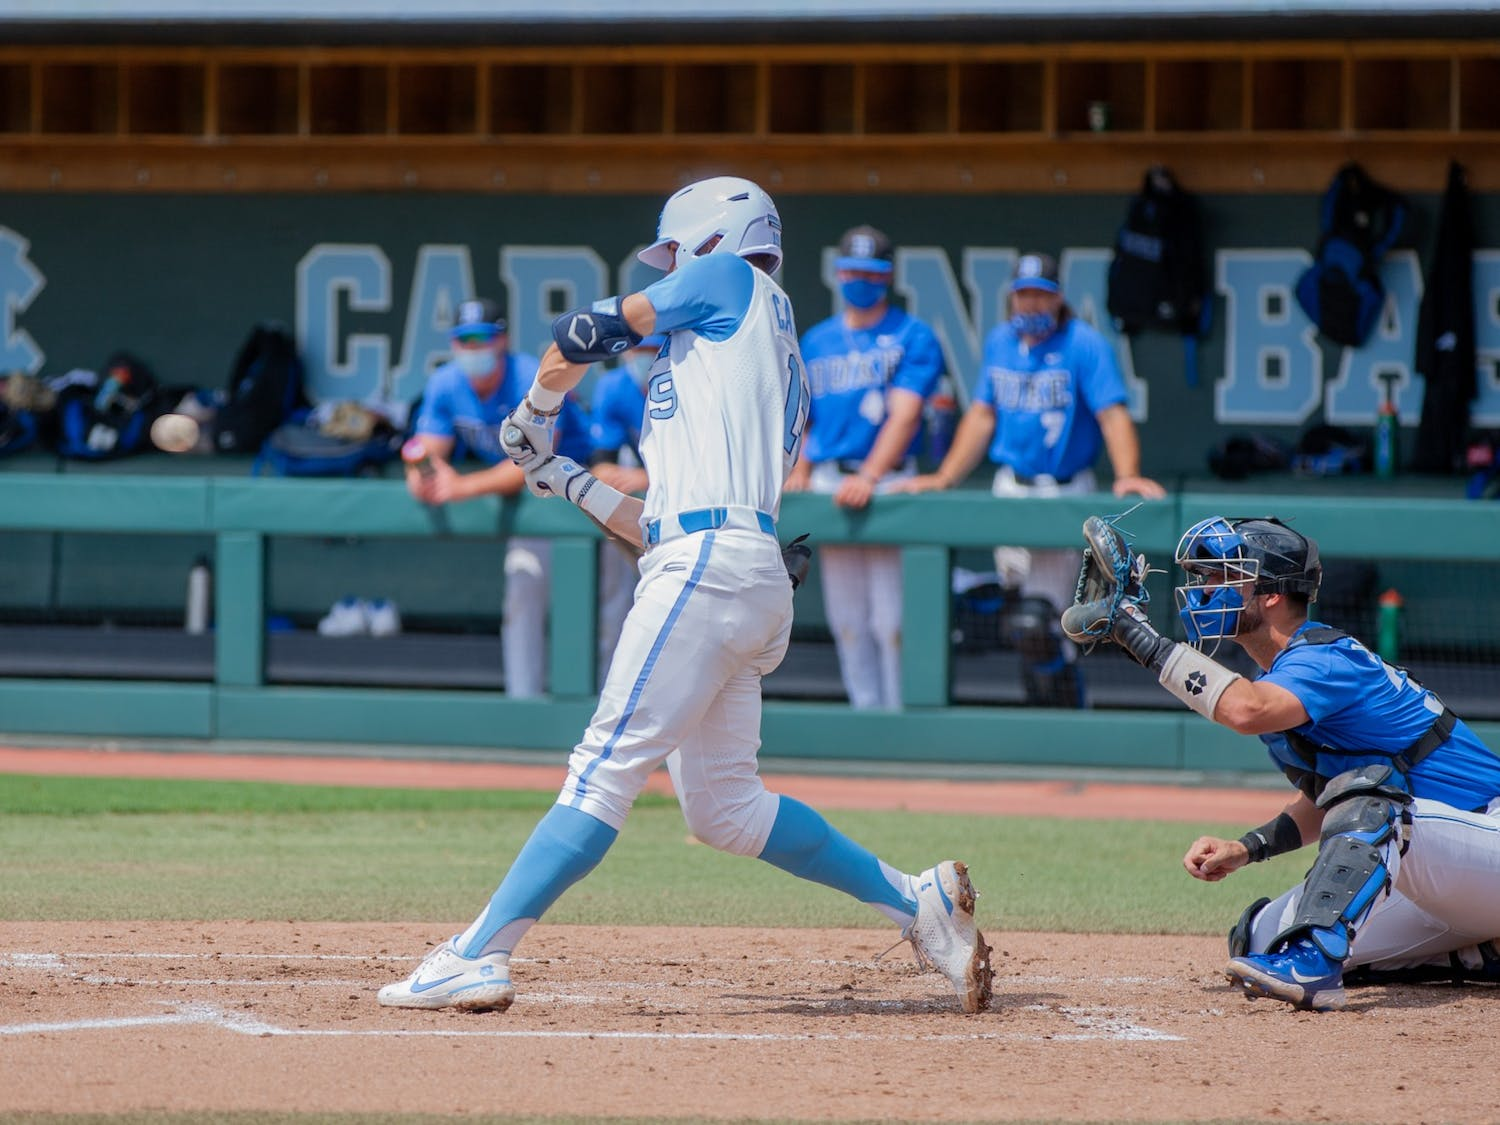 First year infielder Johnny Castagnozzi (19) bats at the game against Duke on Saturday Apr. 10 2021 at Boshamer stadium. UNC lost 2-4.